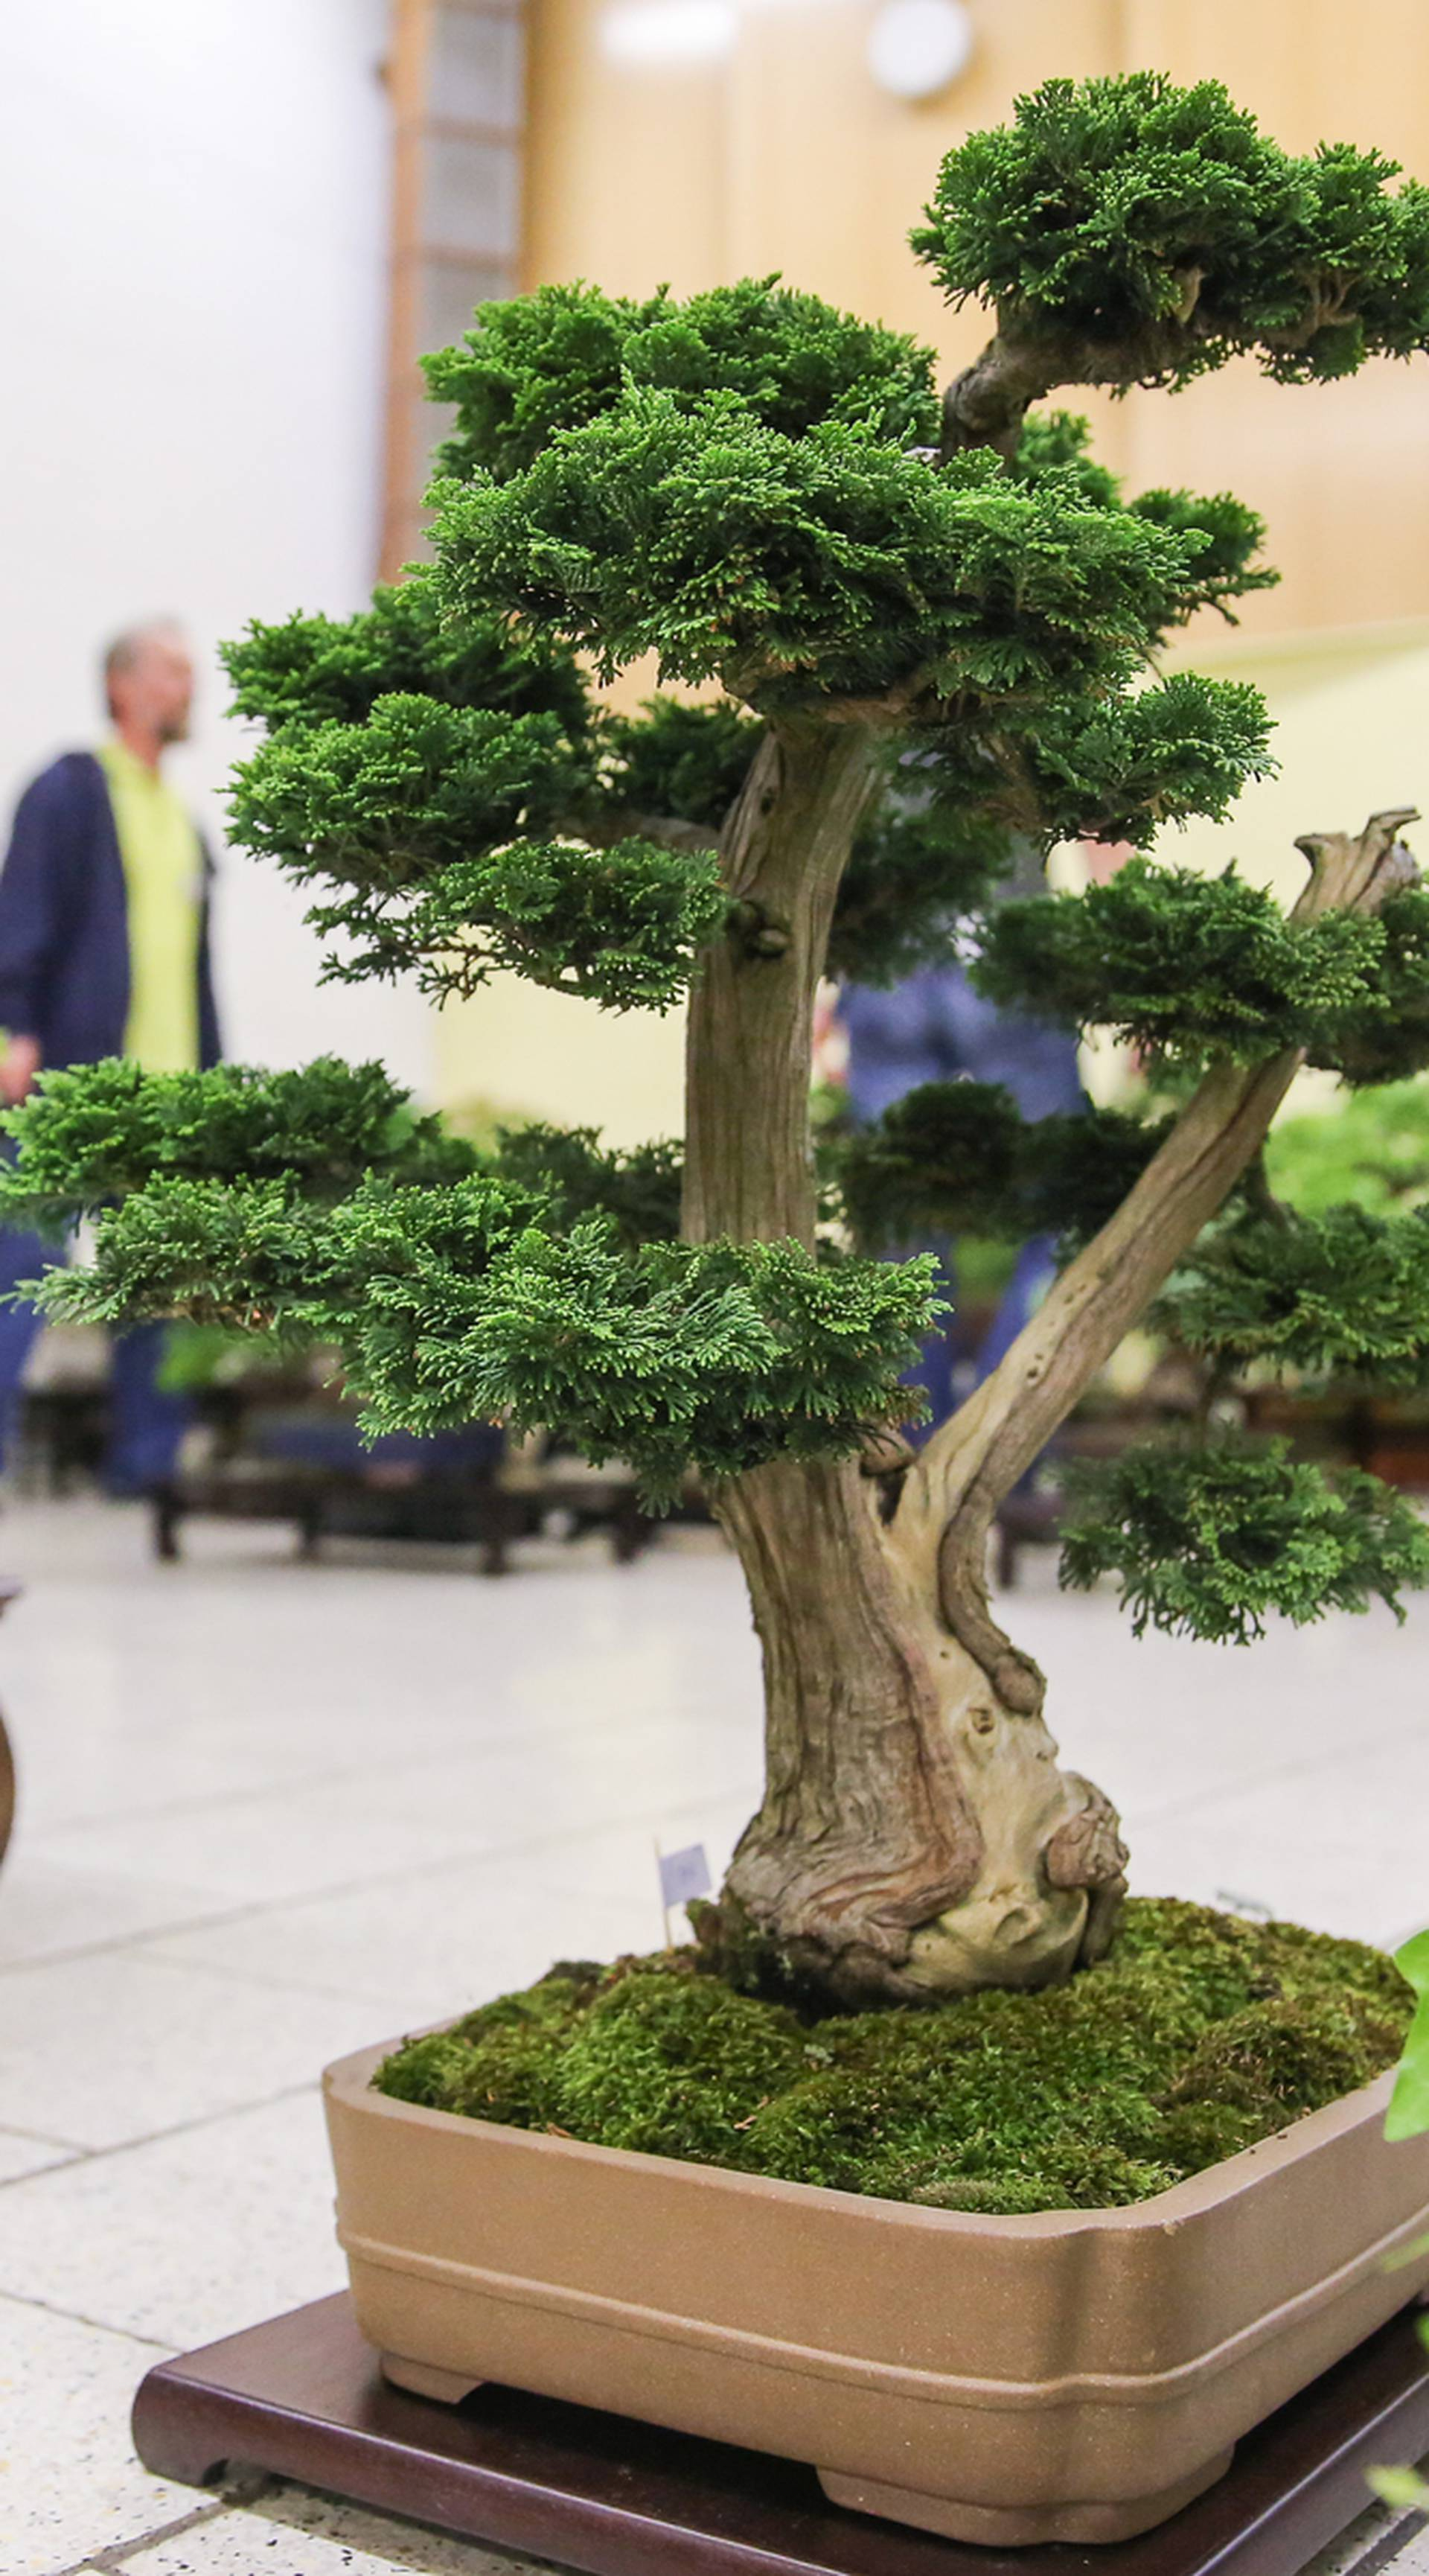 Bonsai exhibition in Leipzig